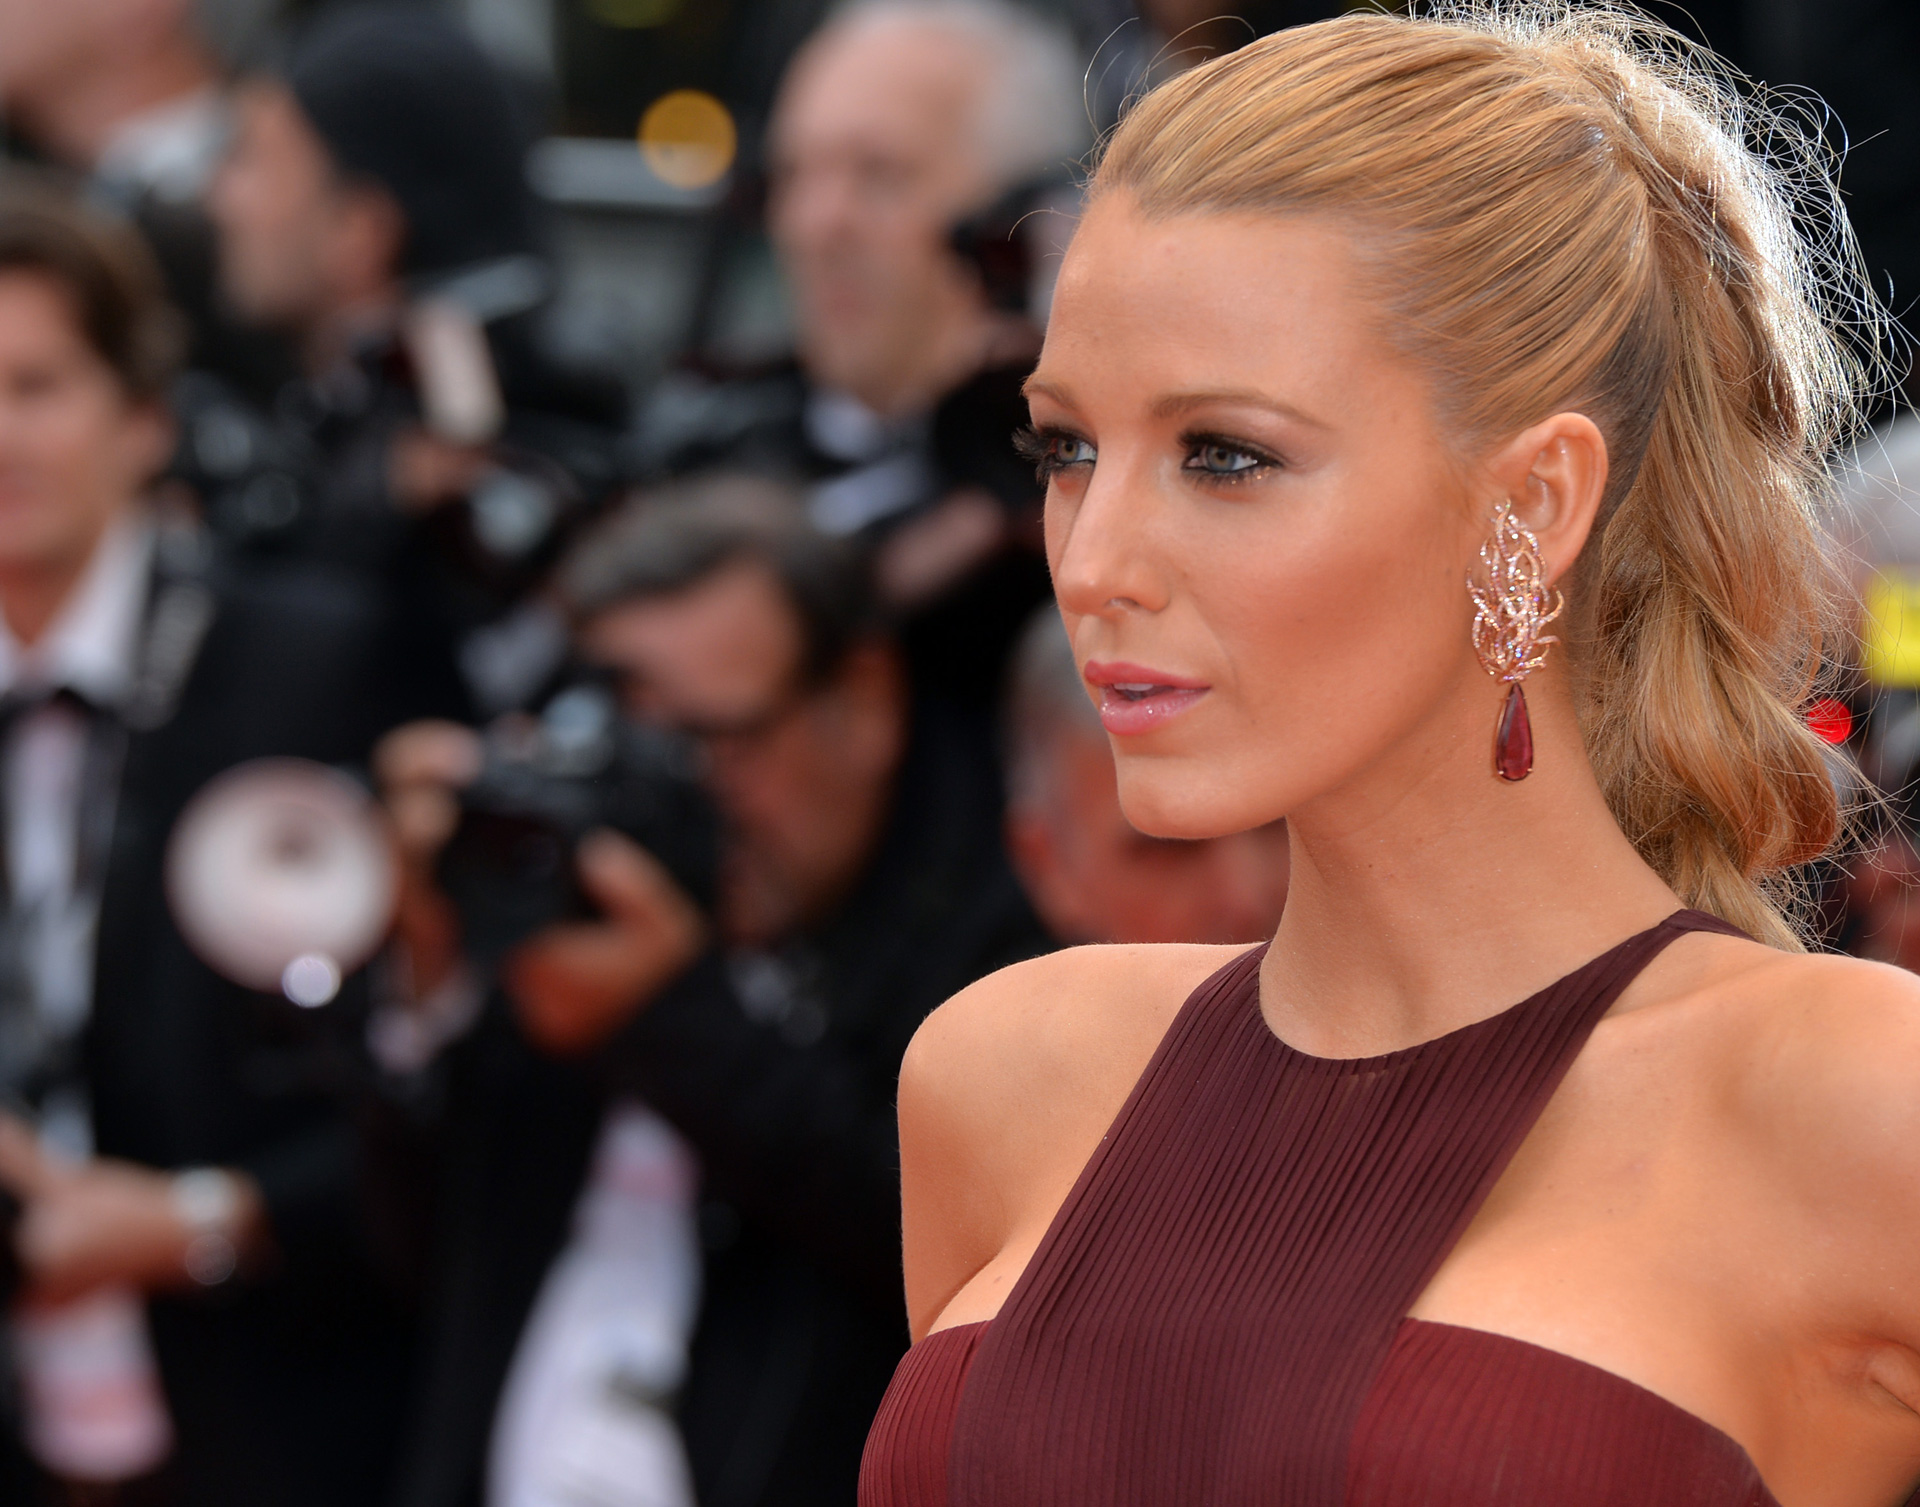 Blake Lively at Cannes Film Festival in 2014 wearing Gucci